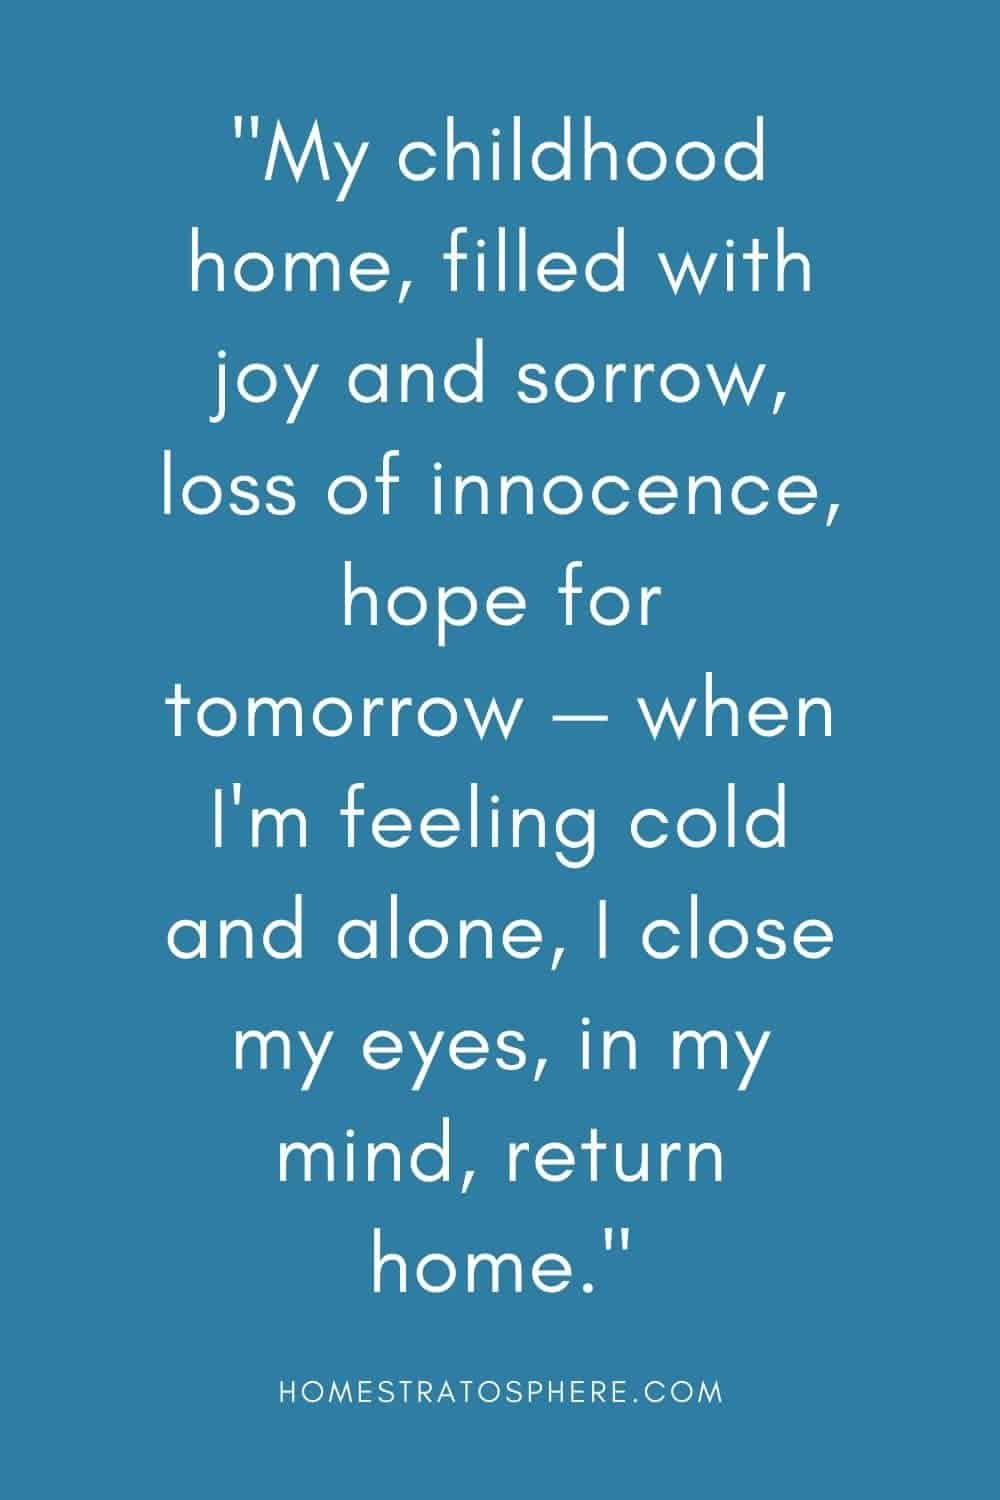 """""""My childhood home, filled with joy and sorrow, loss of innocence, hope for tomorrow — when I'm feeling cold and alone, I close my eyes, in my mind, return home."""""""